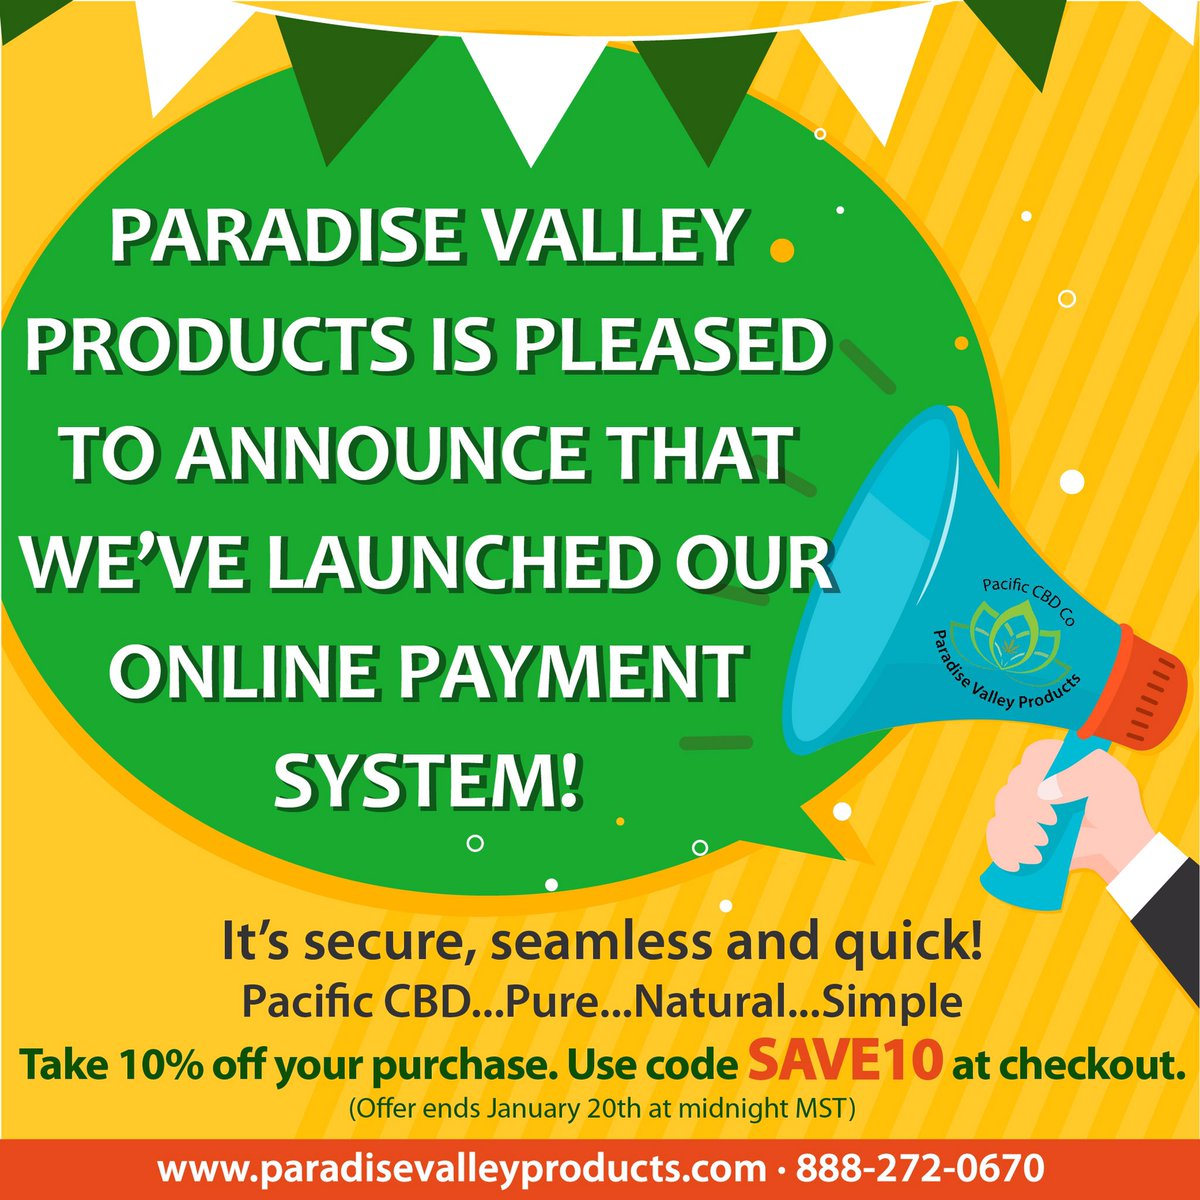 We're pleased to announce our new secure & seamless online payment system for your favorite Pacific CBD products. Take 10% off your purchase now with code SAVE10 at checkout. #freeshipping Shop http://www.paradisevalleyproducts.com   #pacificcbd #cbd #cbdoil #cbdhealth #cbdproducts #cbdonlinepic.twitter.com/ePIn4K5DAq